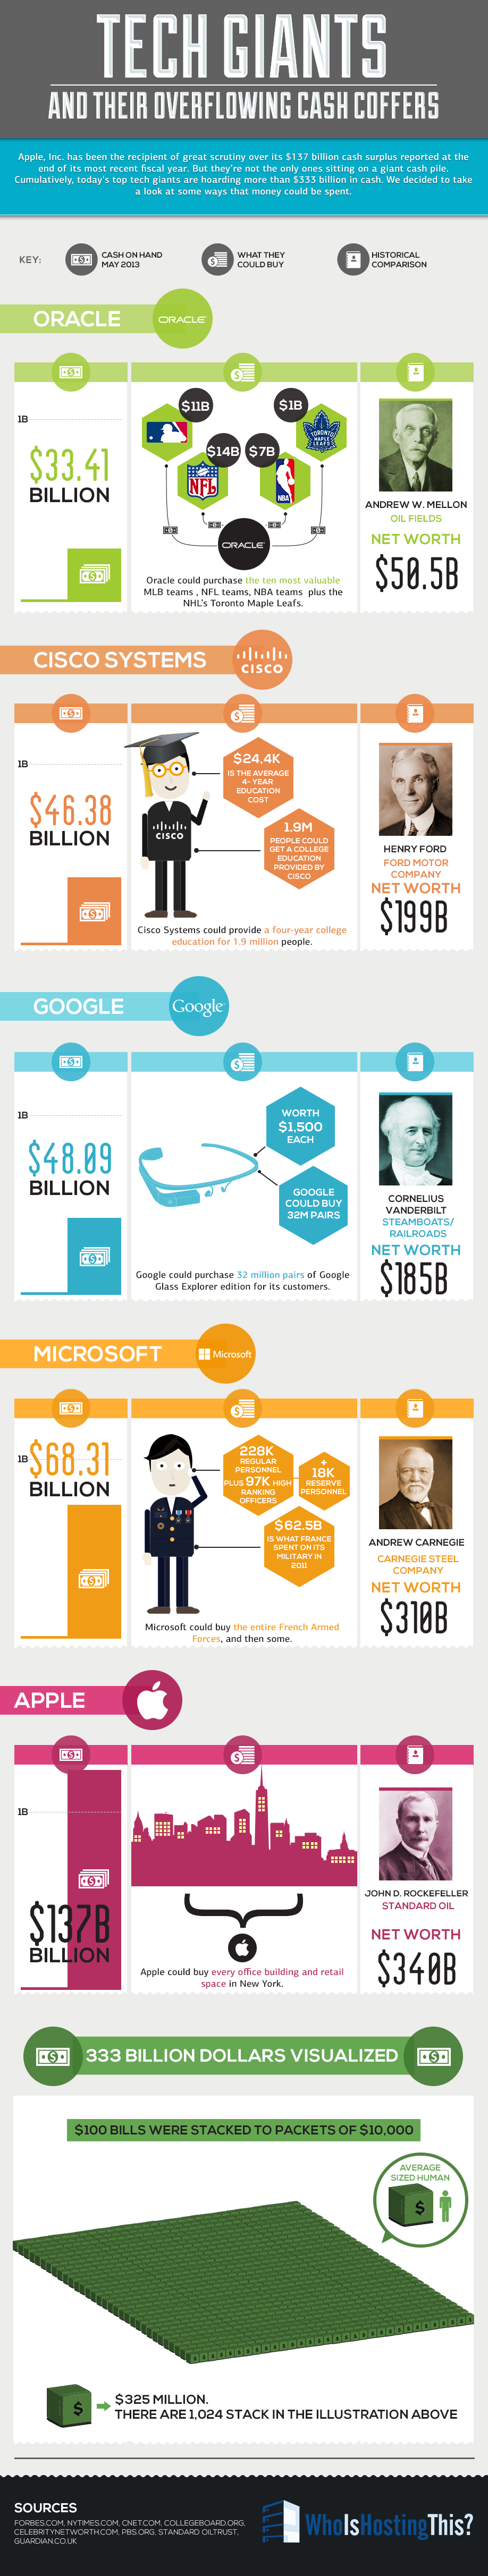 Tech Giants & Their Overflowing Cash Coffers (Infographic)